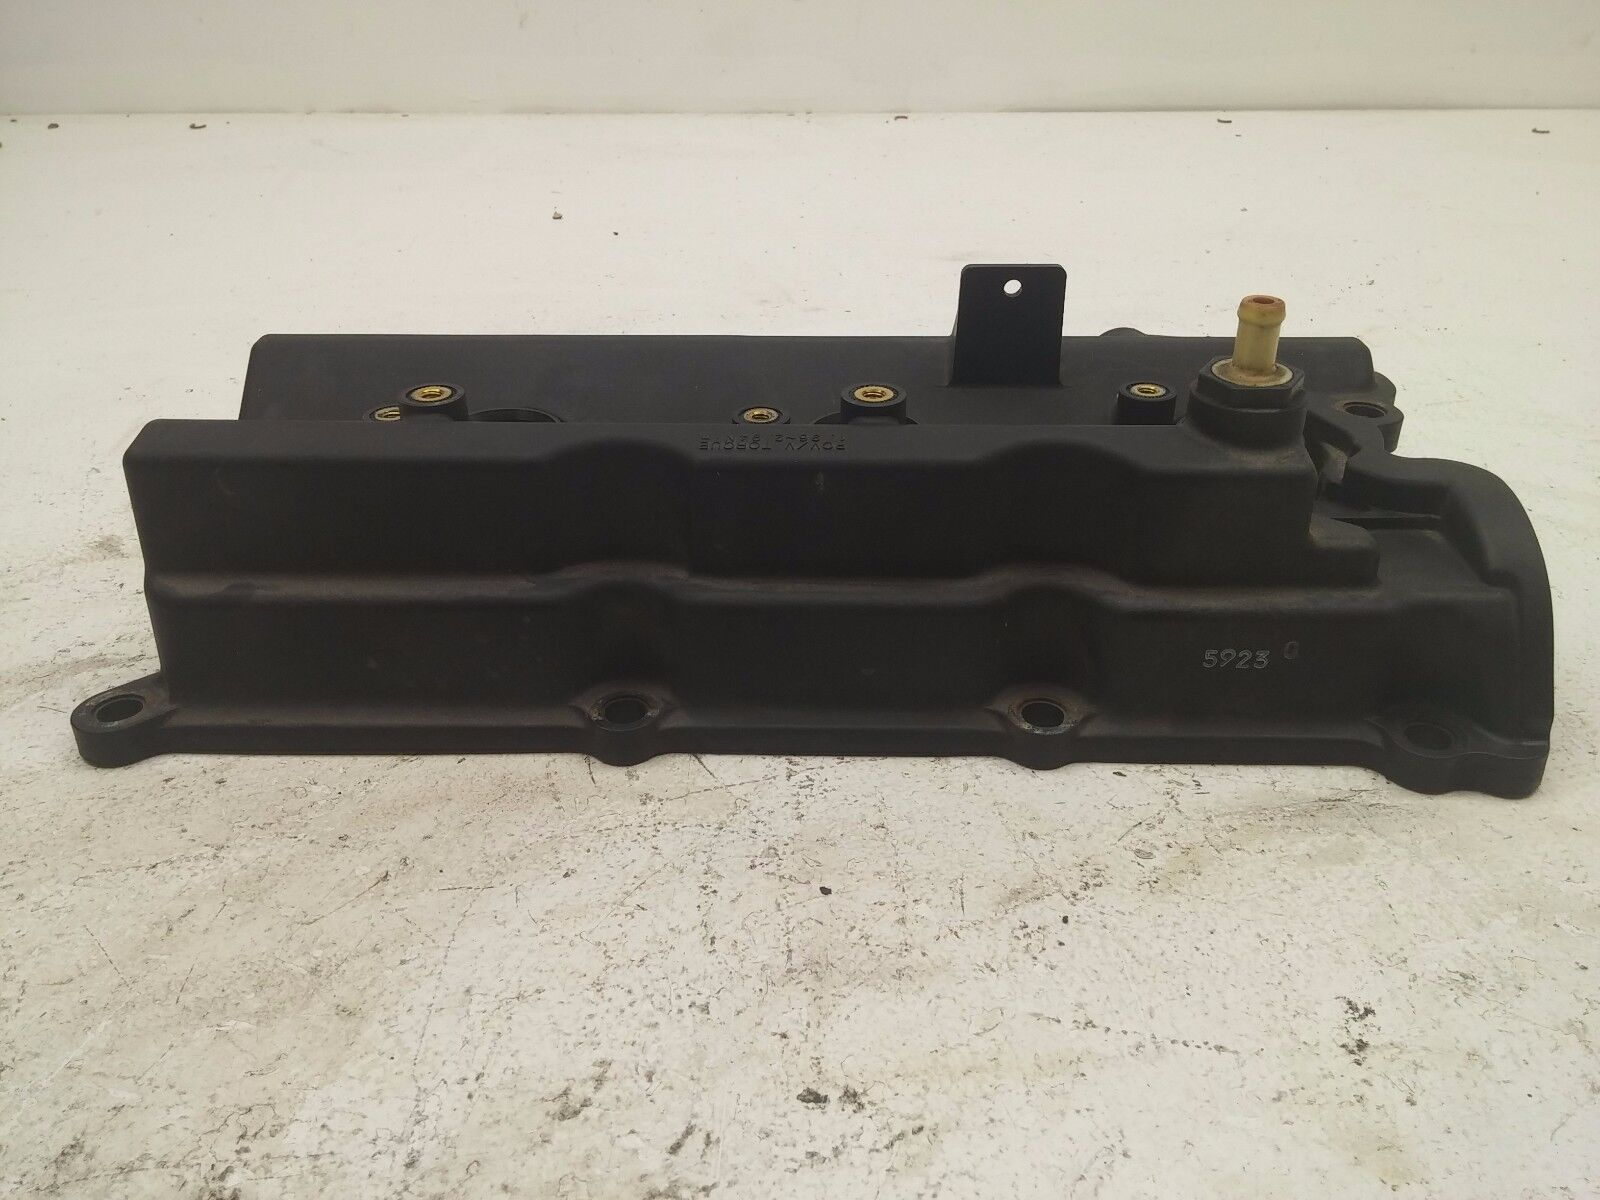 Used infiniti valve covers for sale 2006 infiniti g1935 coupe passenger side engine camshaft valve head cover oem vanachro Image collections